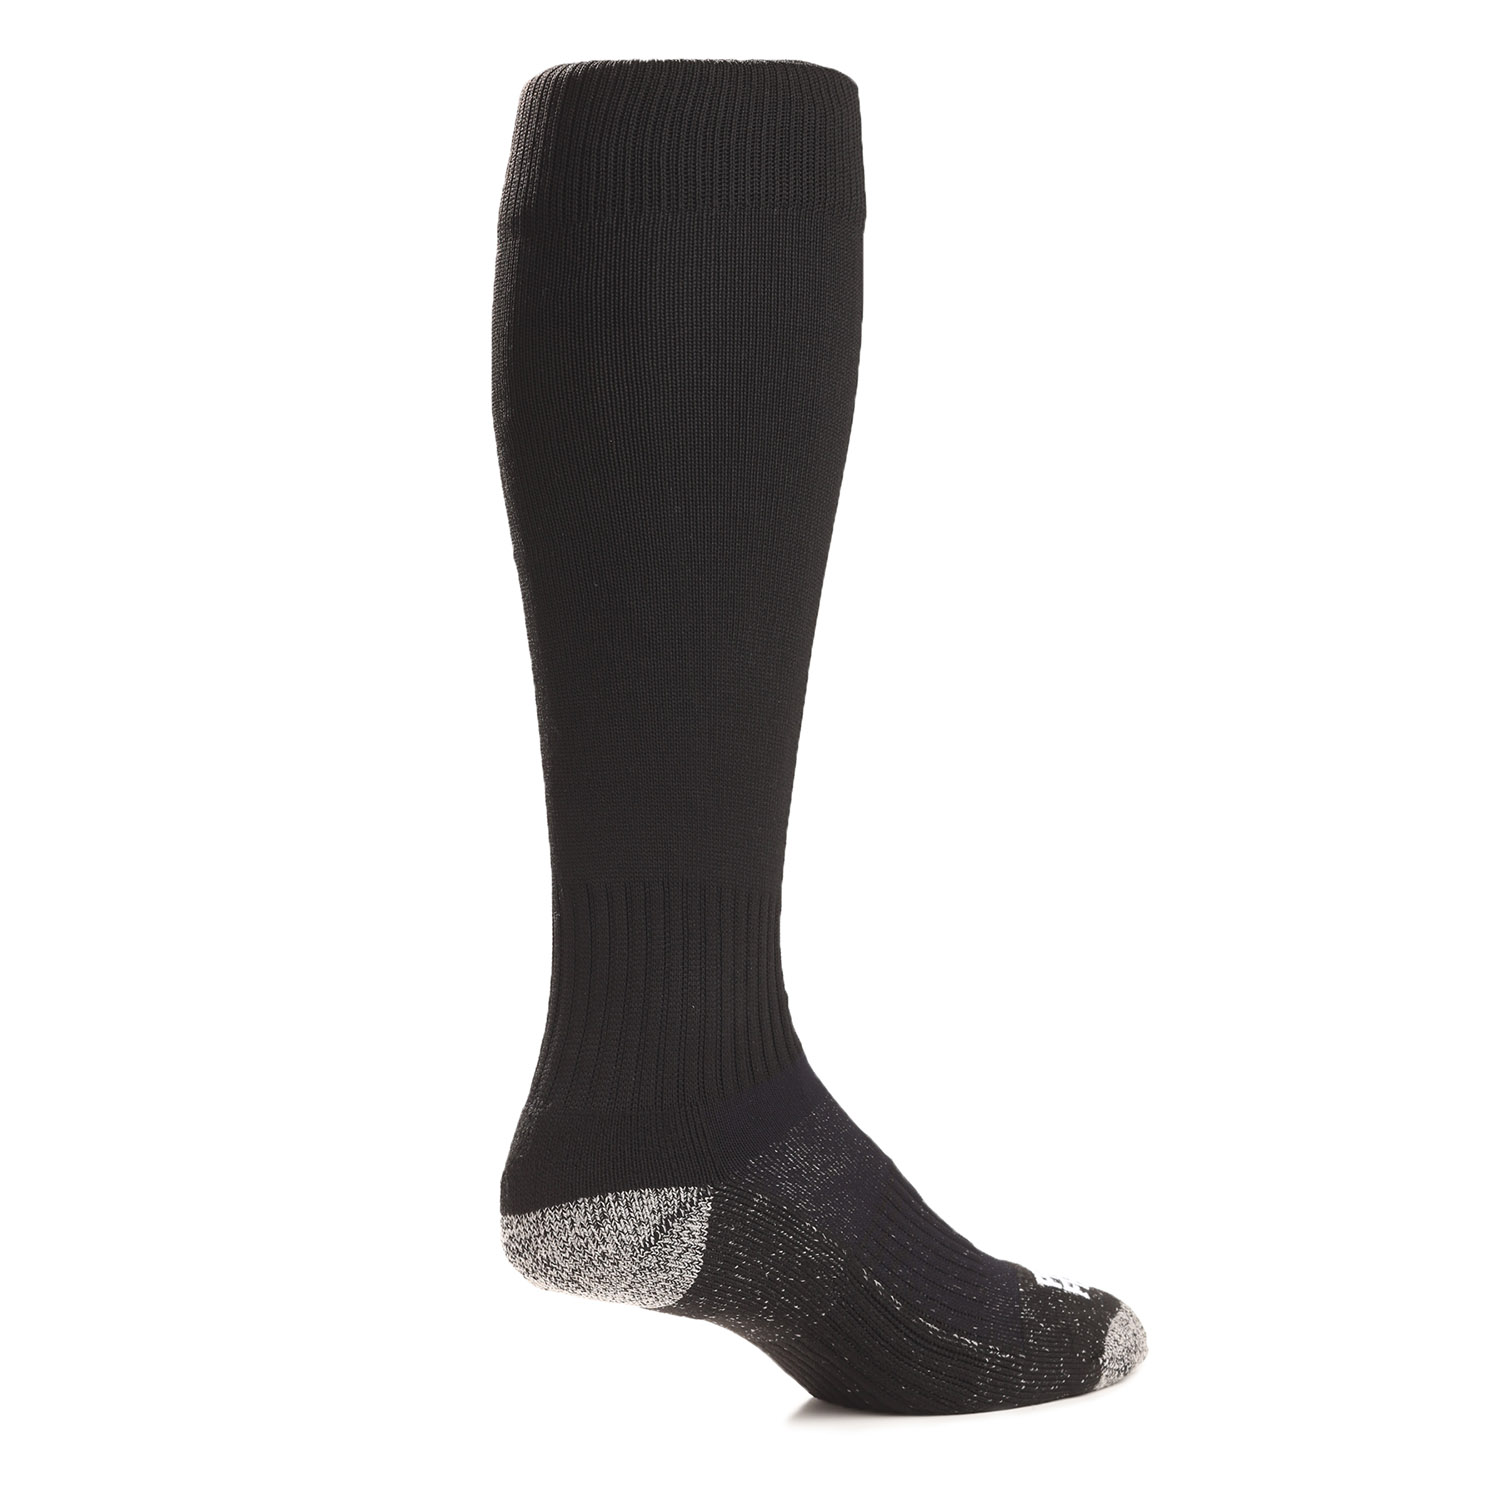 Pro Feet Performance Silver Tech Over-The-Calf Socks